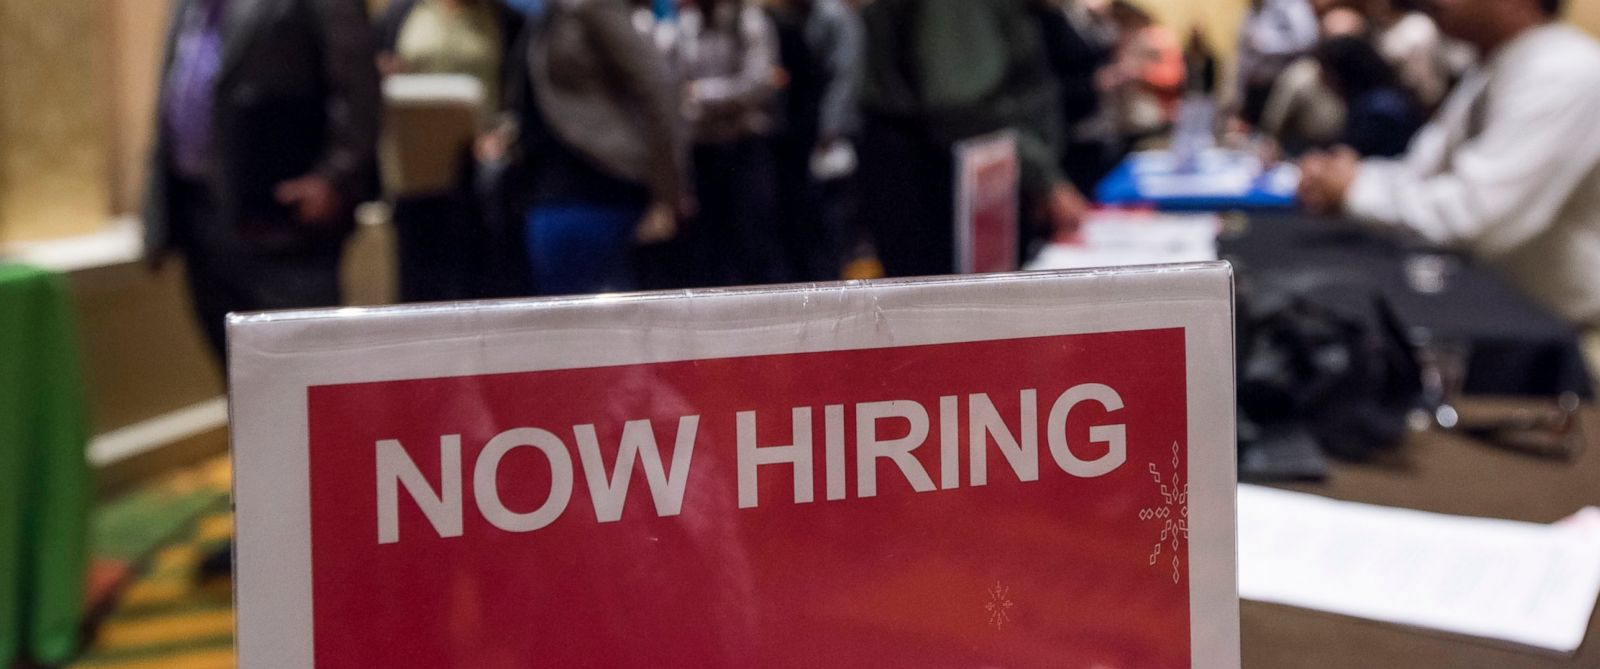 us adds k jobs in abc news us adds 255k jobs in surpassing expectations